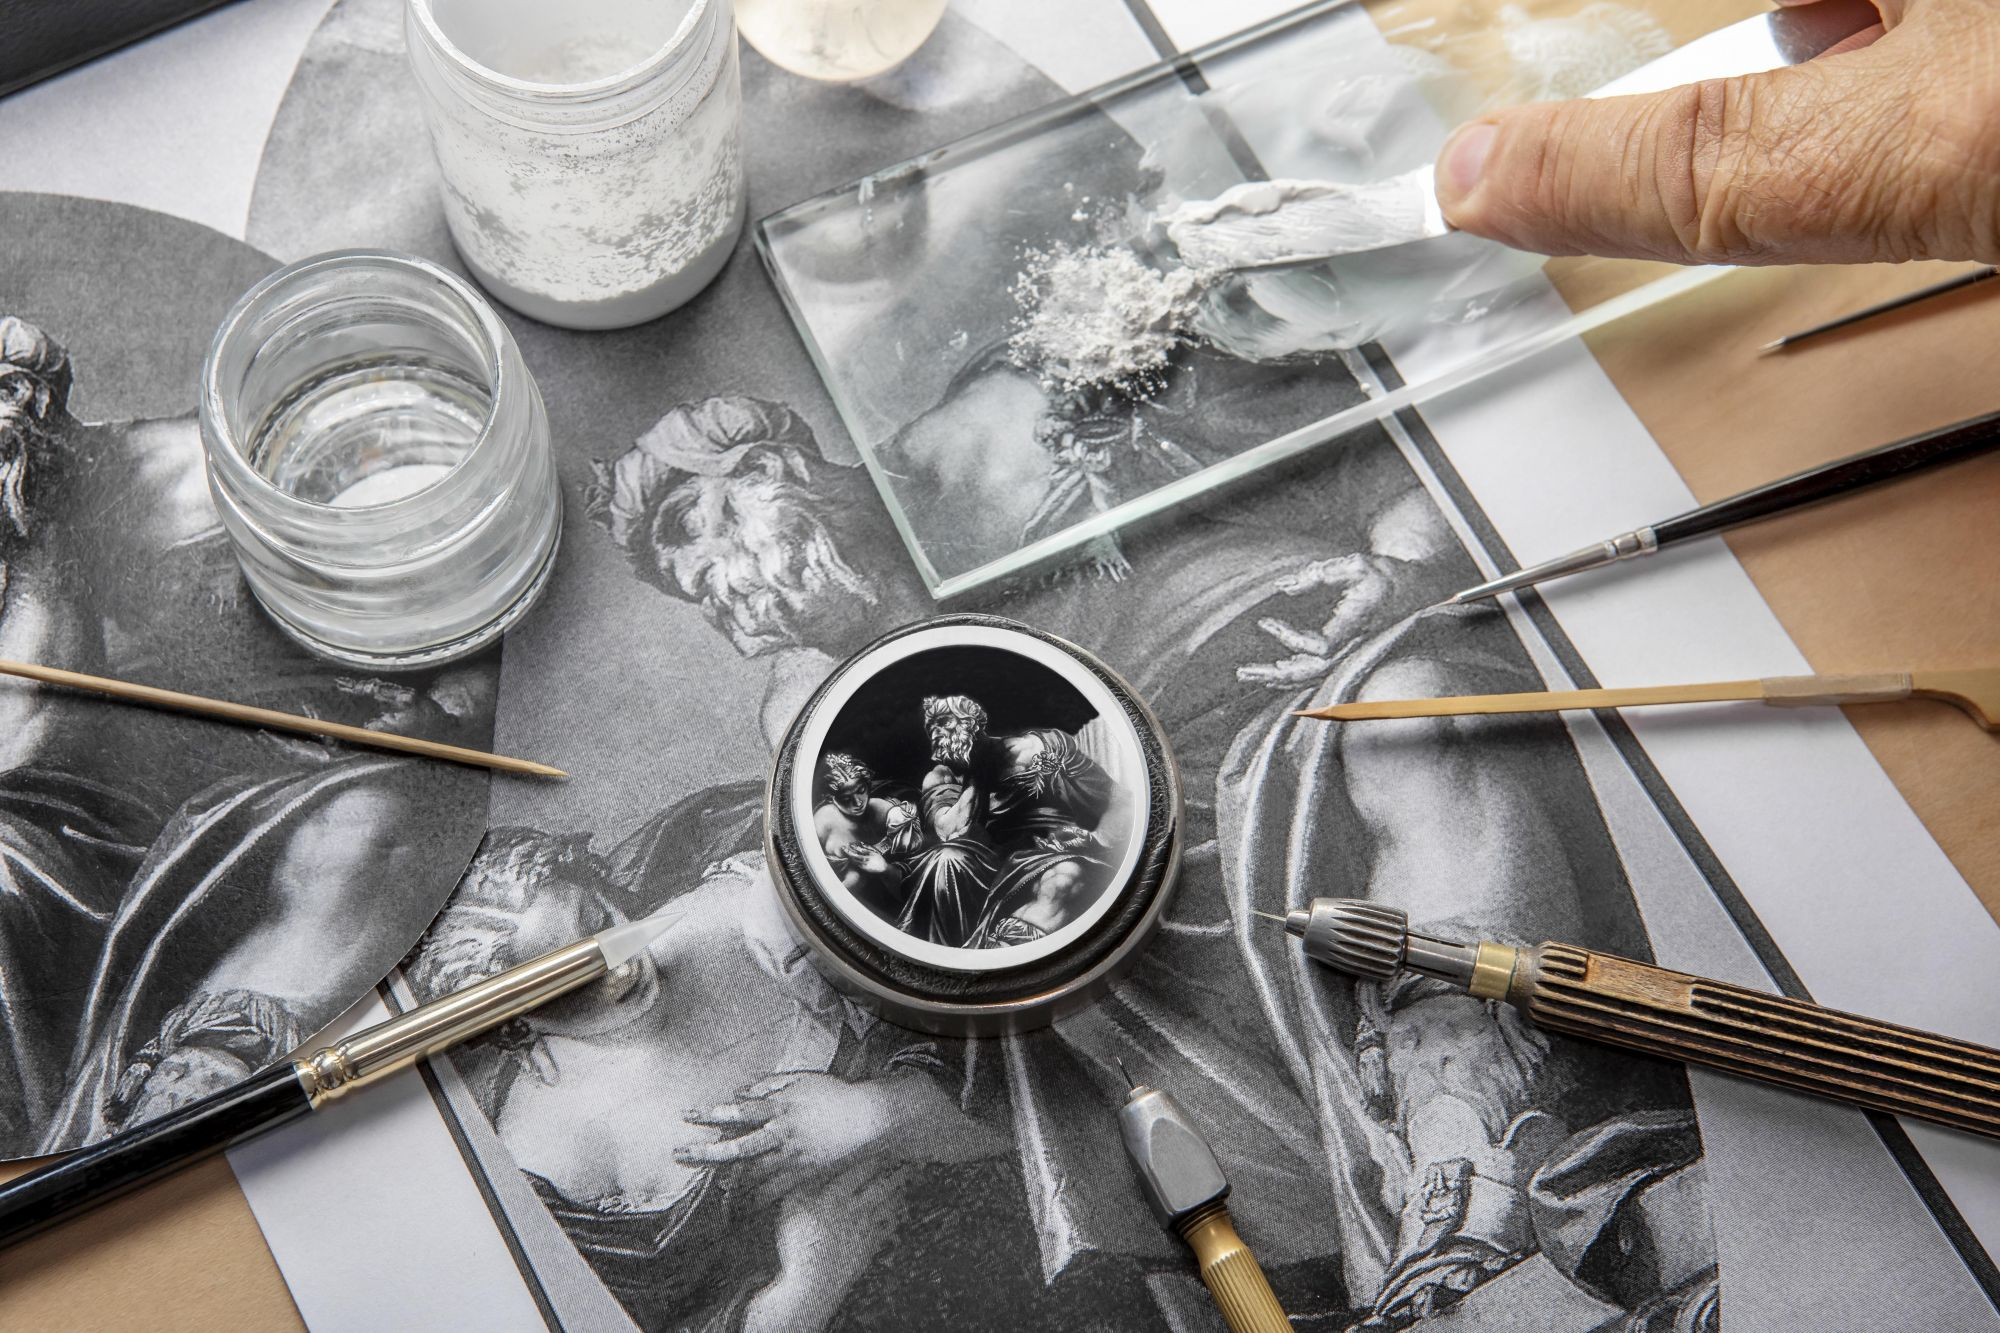 Tatler Exclusive: Louvre Museum Set To Auction Bespoke Vacheron Constantin Watch For Charity